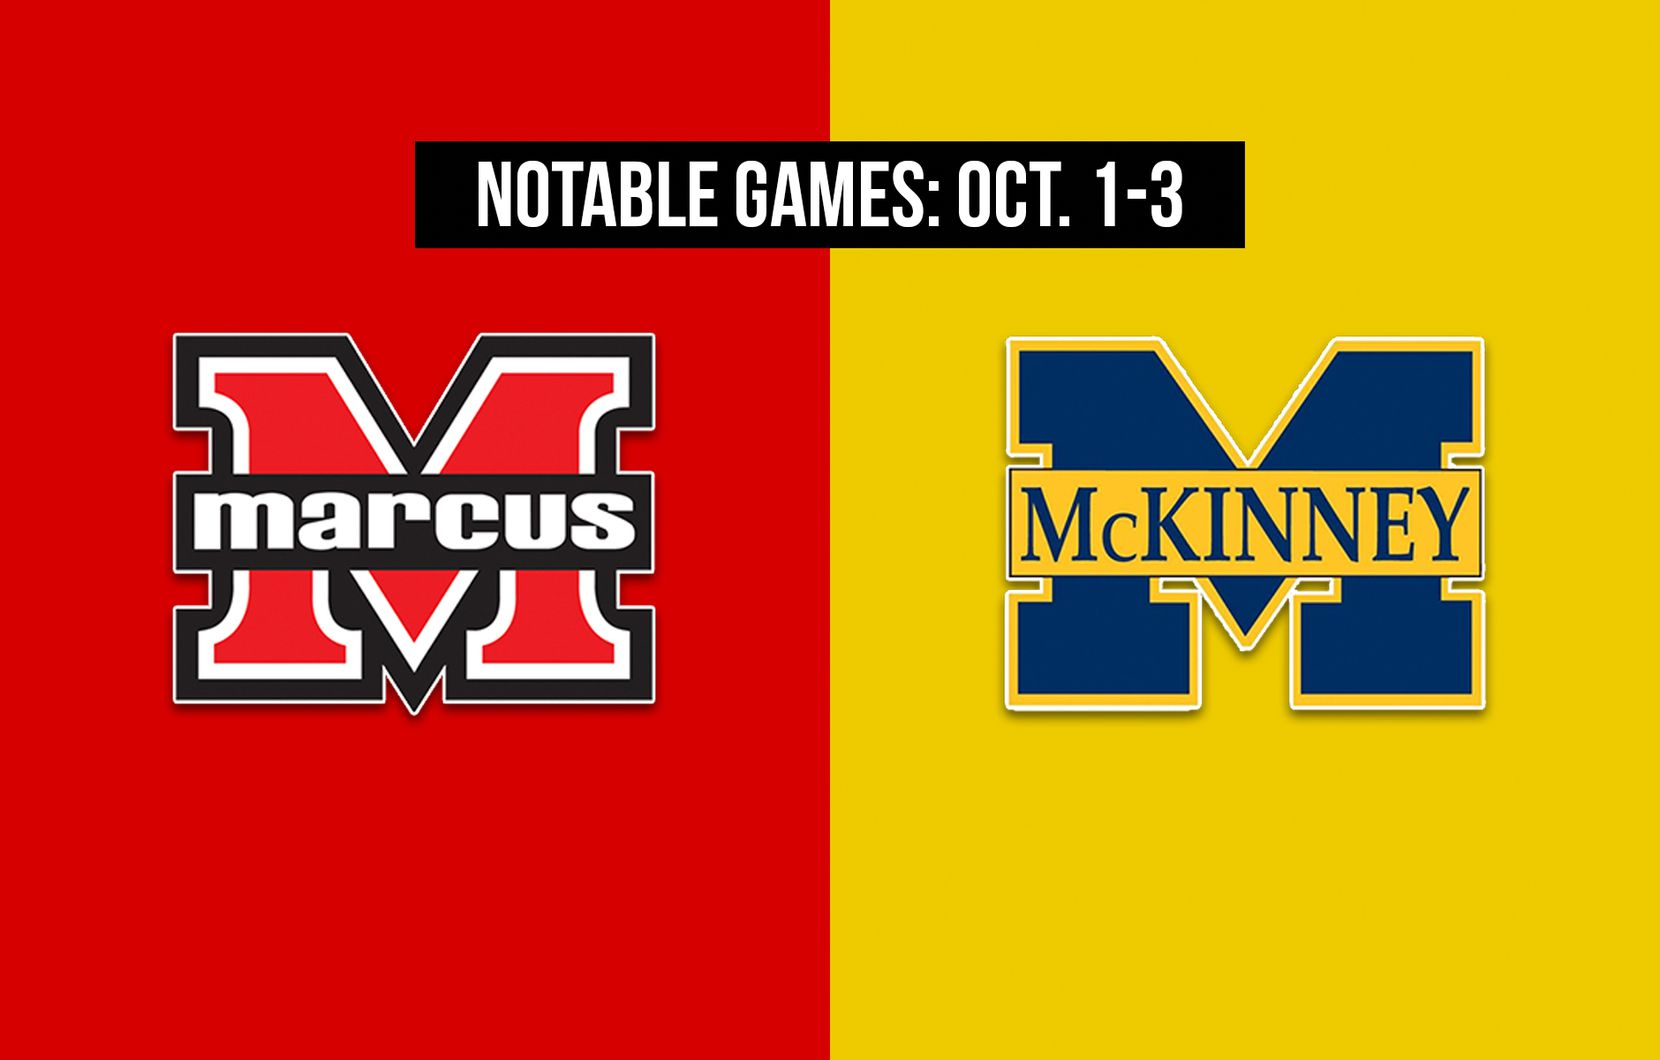 Notable games for the week of Oct. 1-3 of the 2020 season: Flower Mound Marcus vs. McKinney.